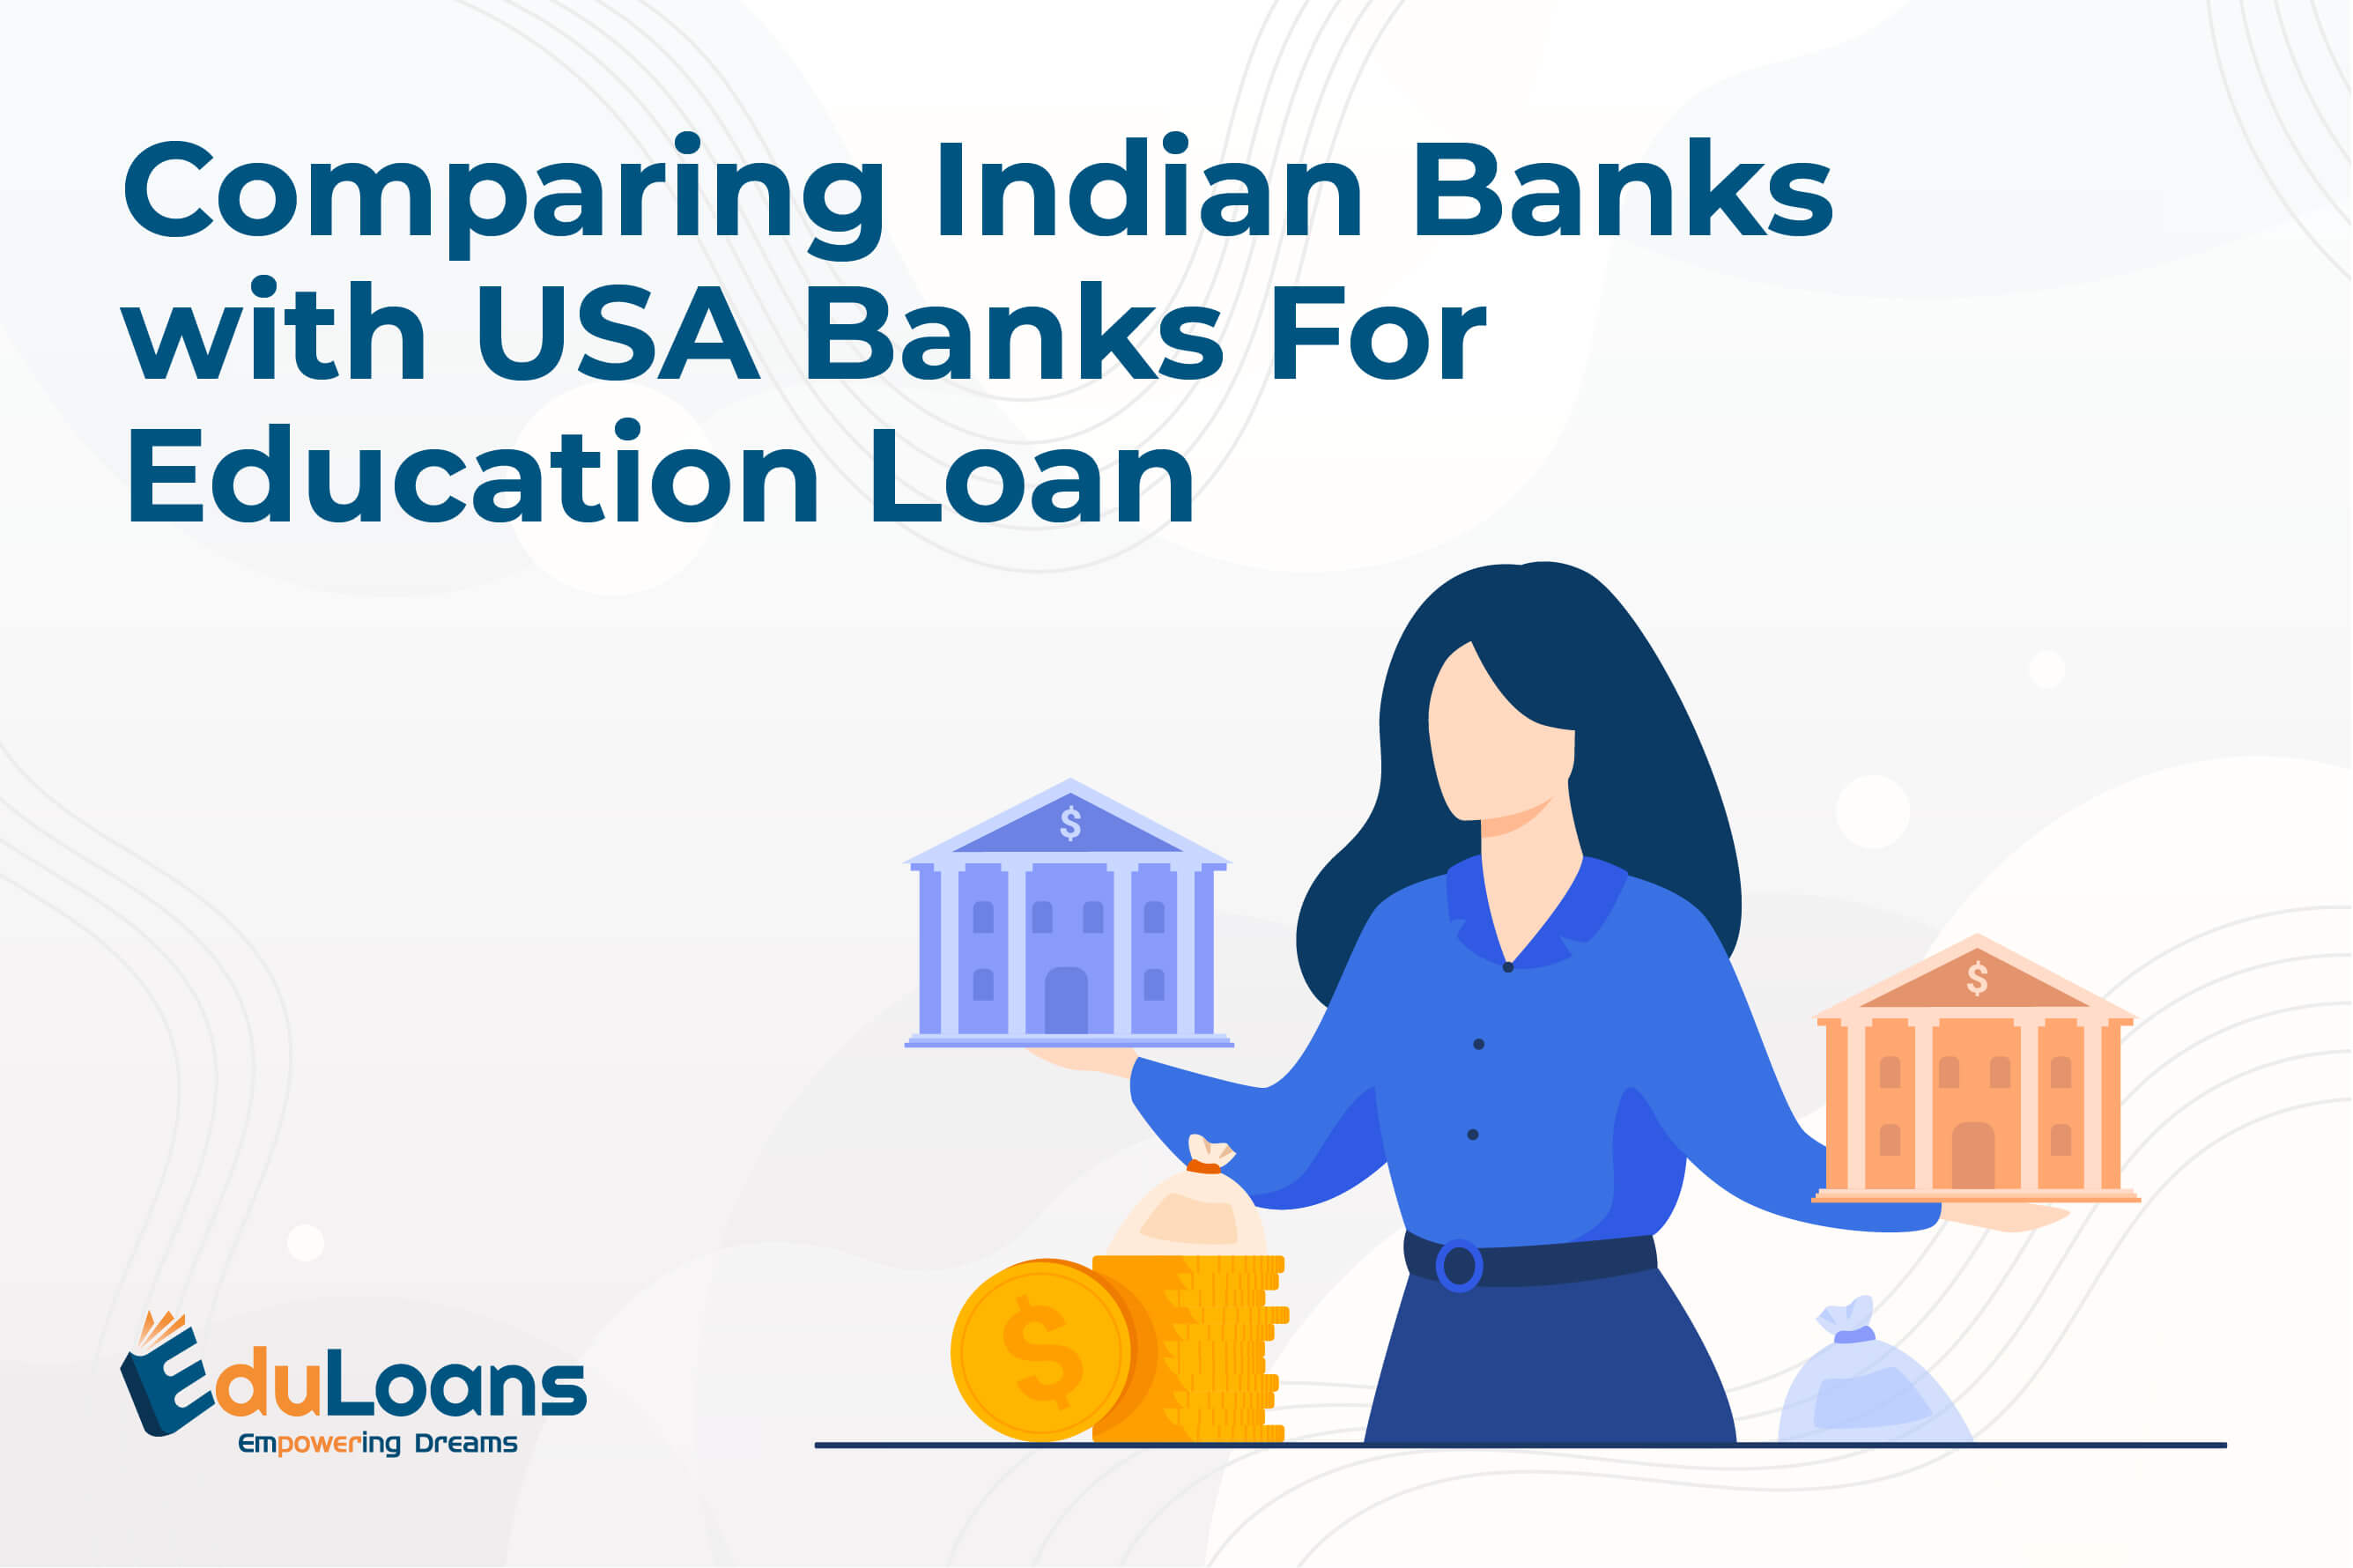 Comparing Indian Banks with USA Banks For Education Loan